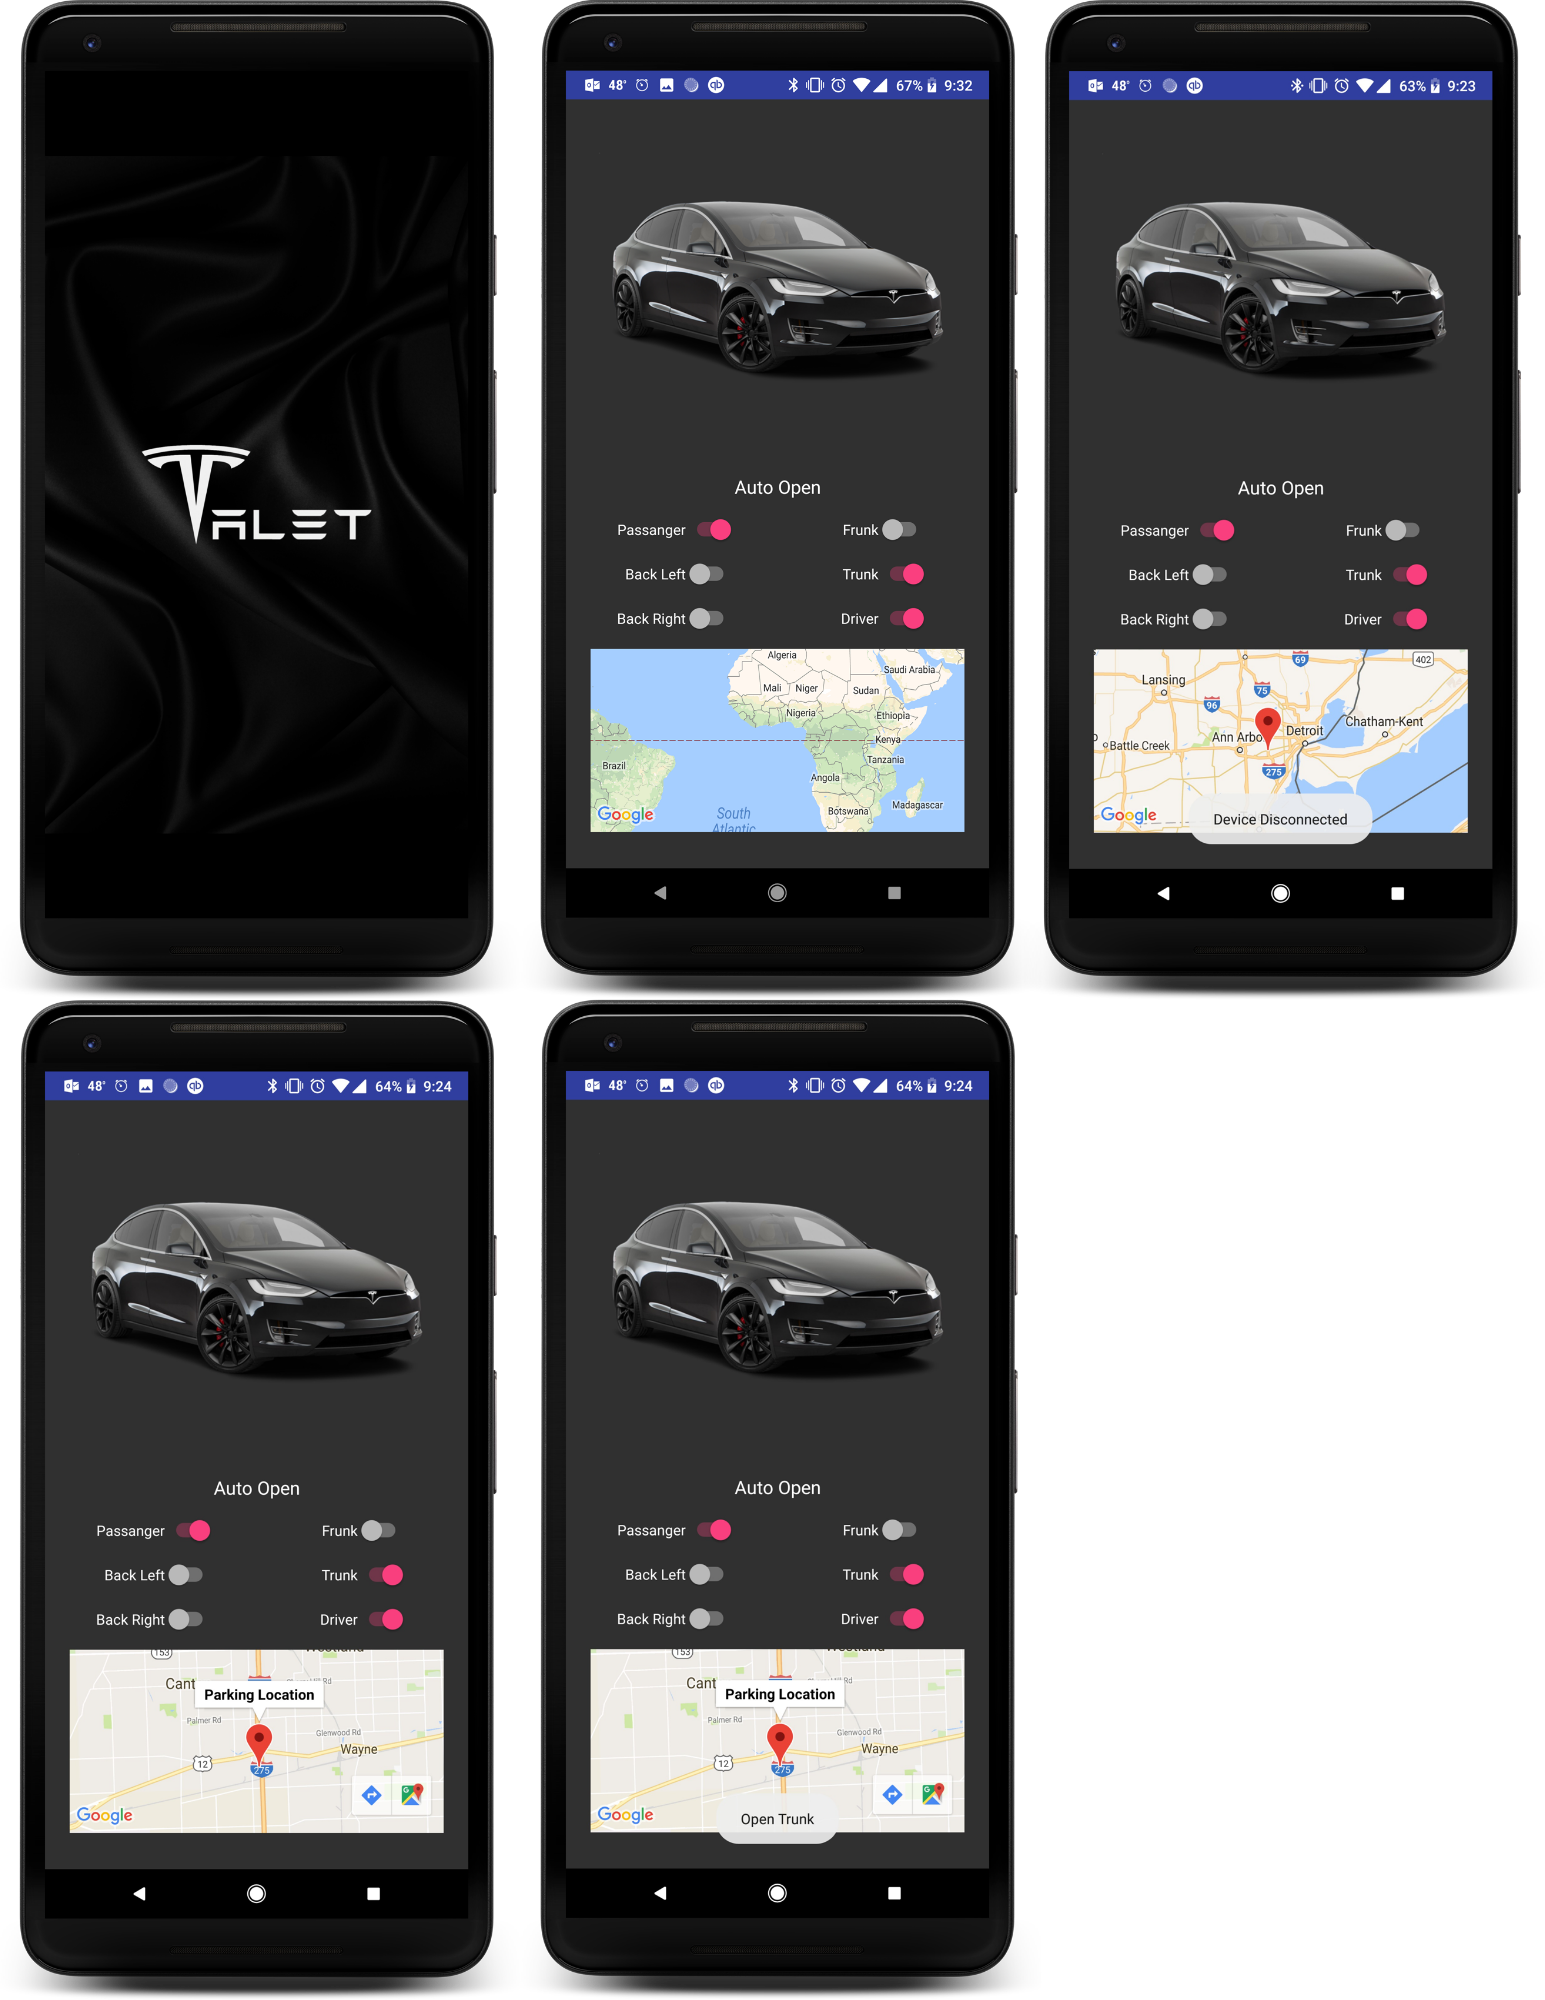 Tesla Valet Preview 0